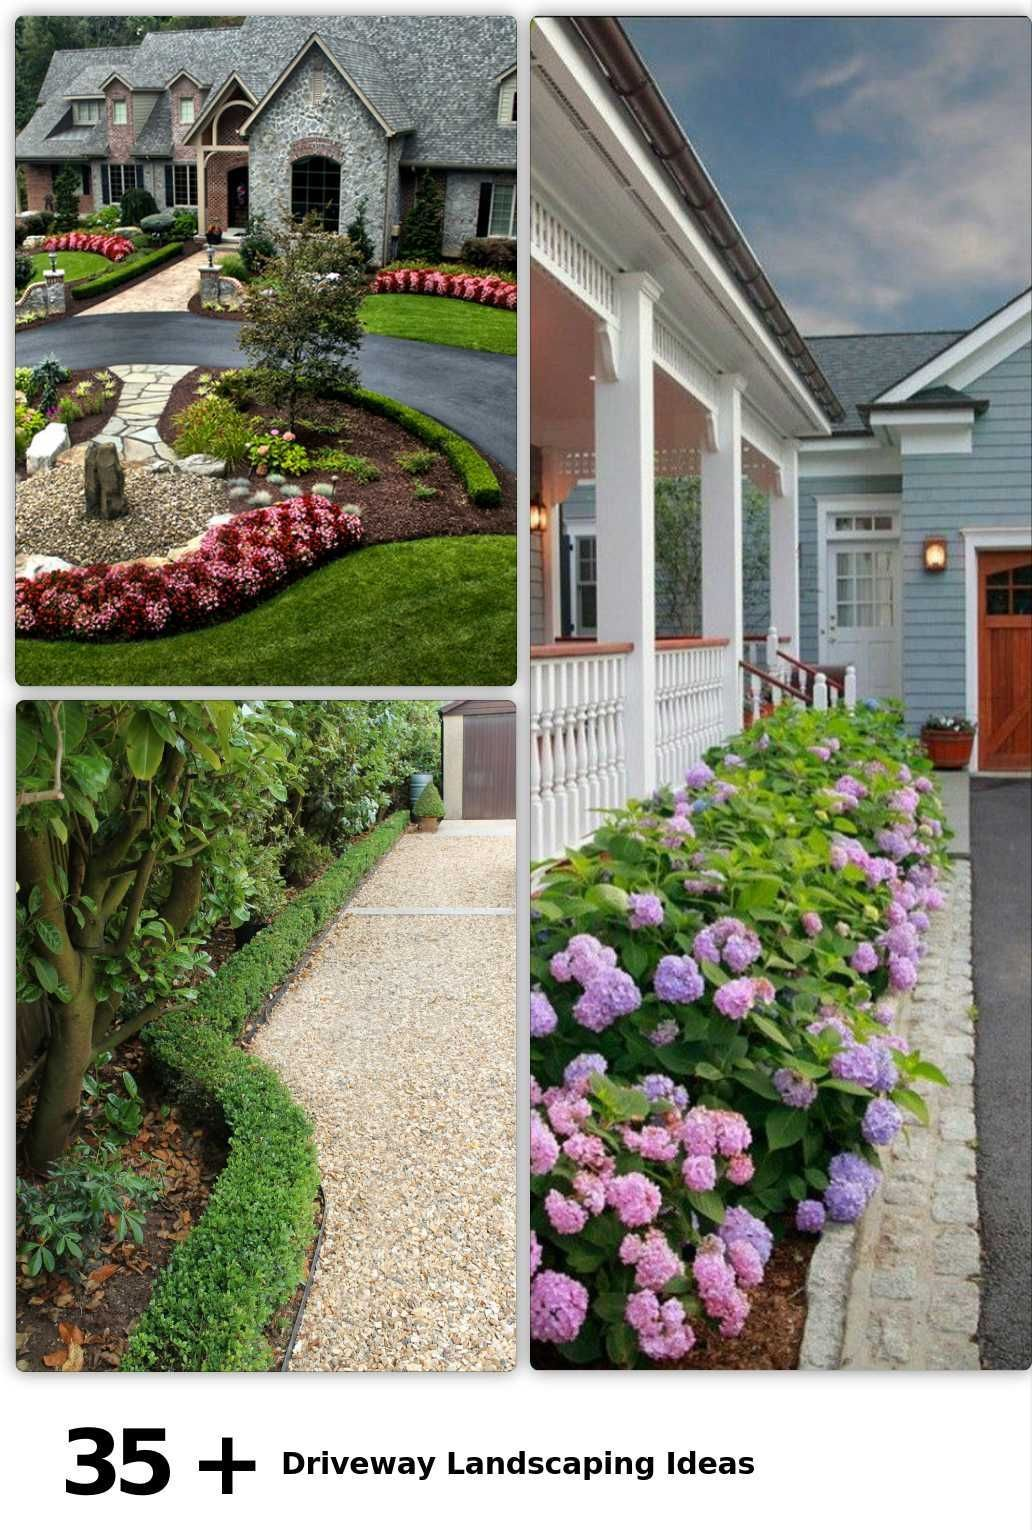 35 Driveway Landscaping Ideas Caution when watering only watering not dcaution